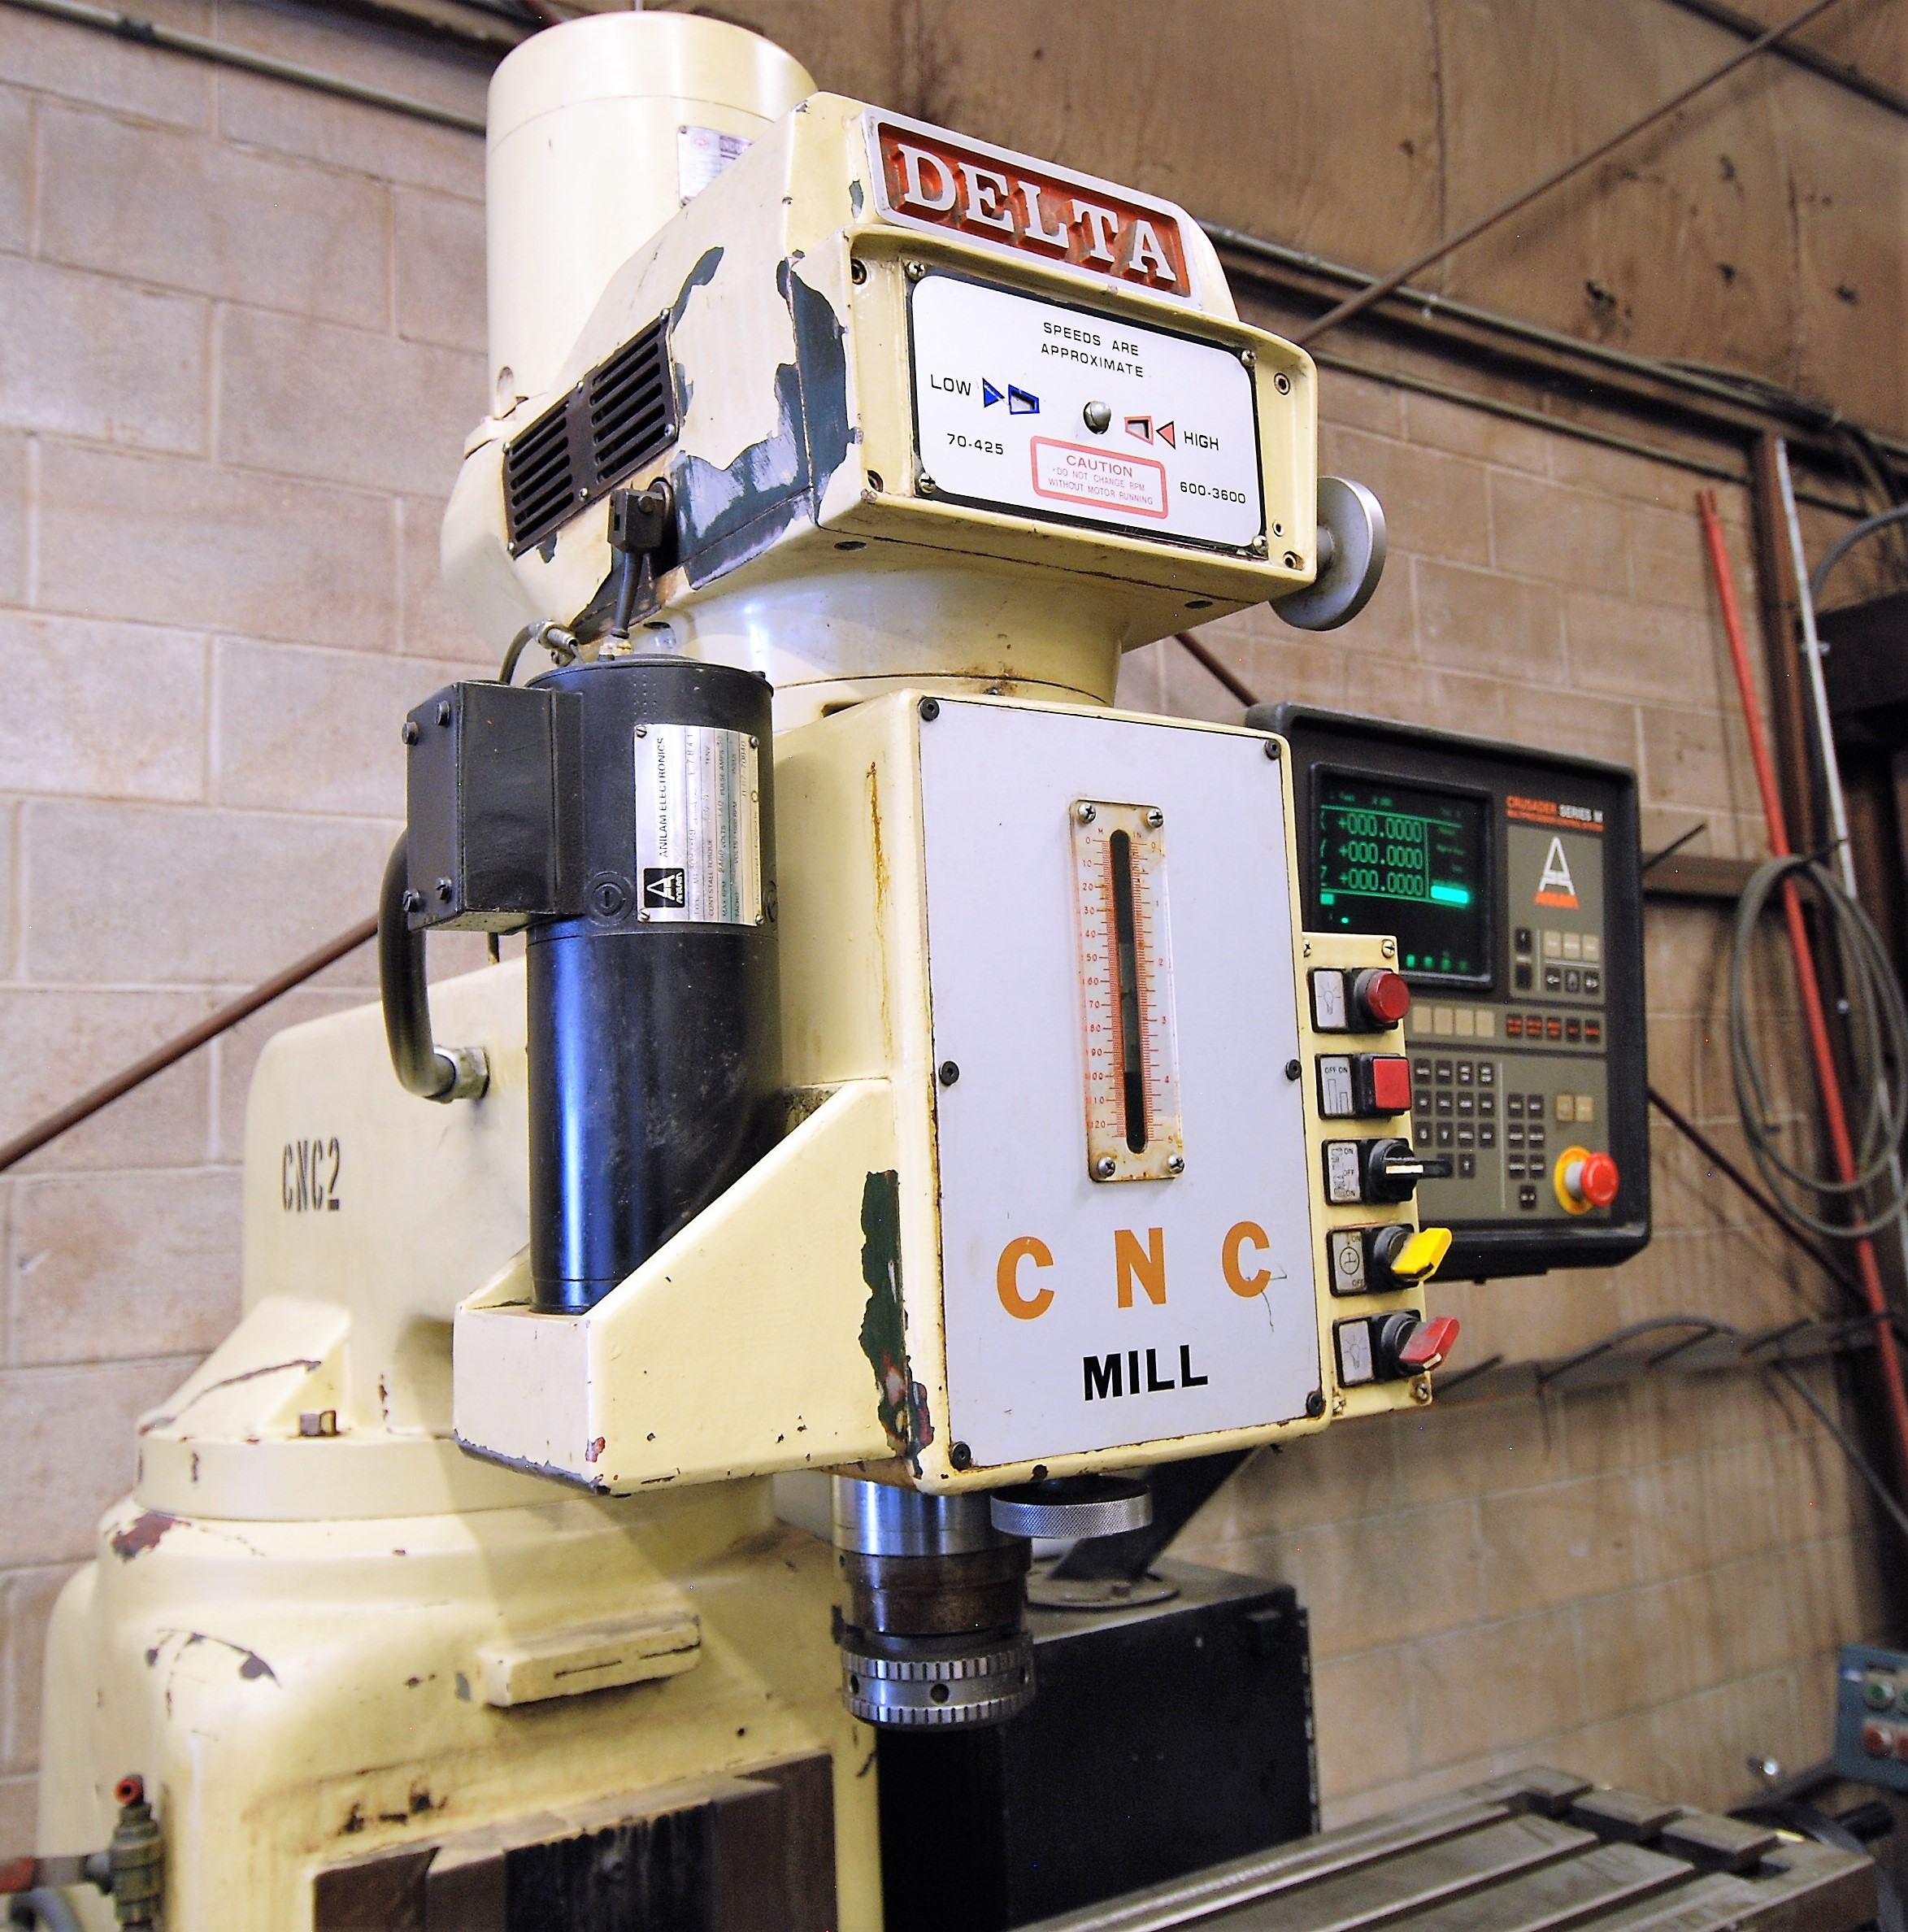 """DELTACNC VERTICAL MILLING MACHINE, ANILAM CRUSADER SERIES M CNC CONTROL, 10"""" x 52"""" TABLE, 3,600 - Image 4 of 7"""